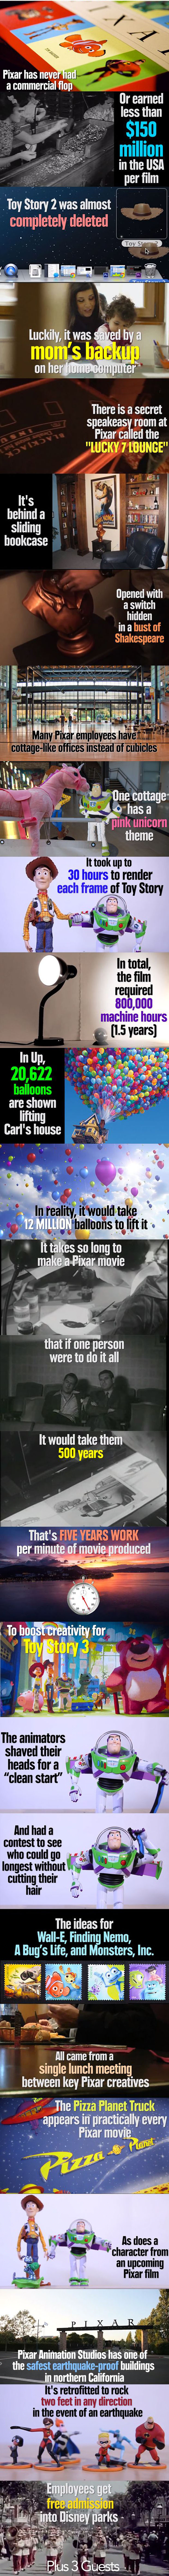 17 Facts About Pixar That You Probably Didn't Know About